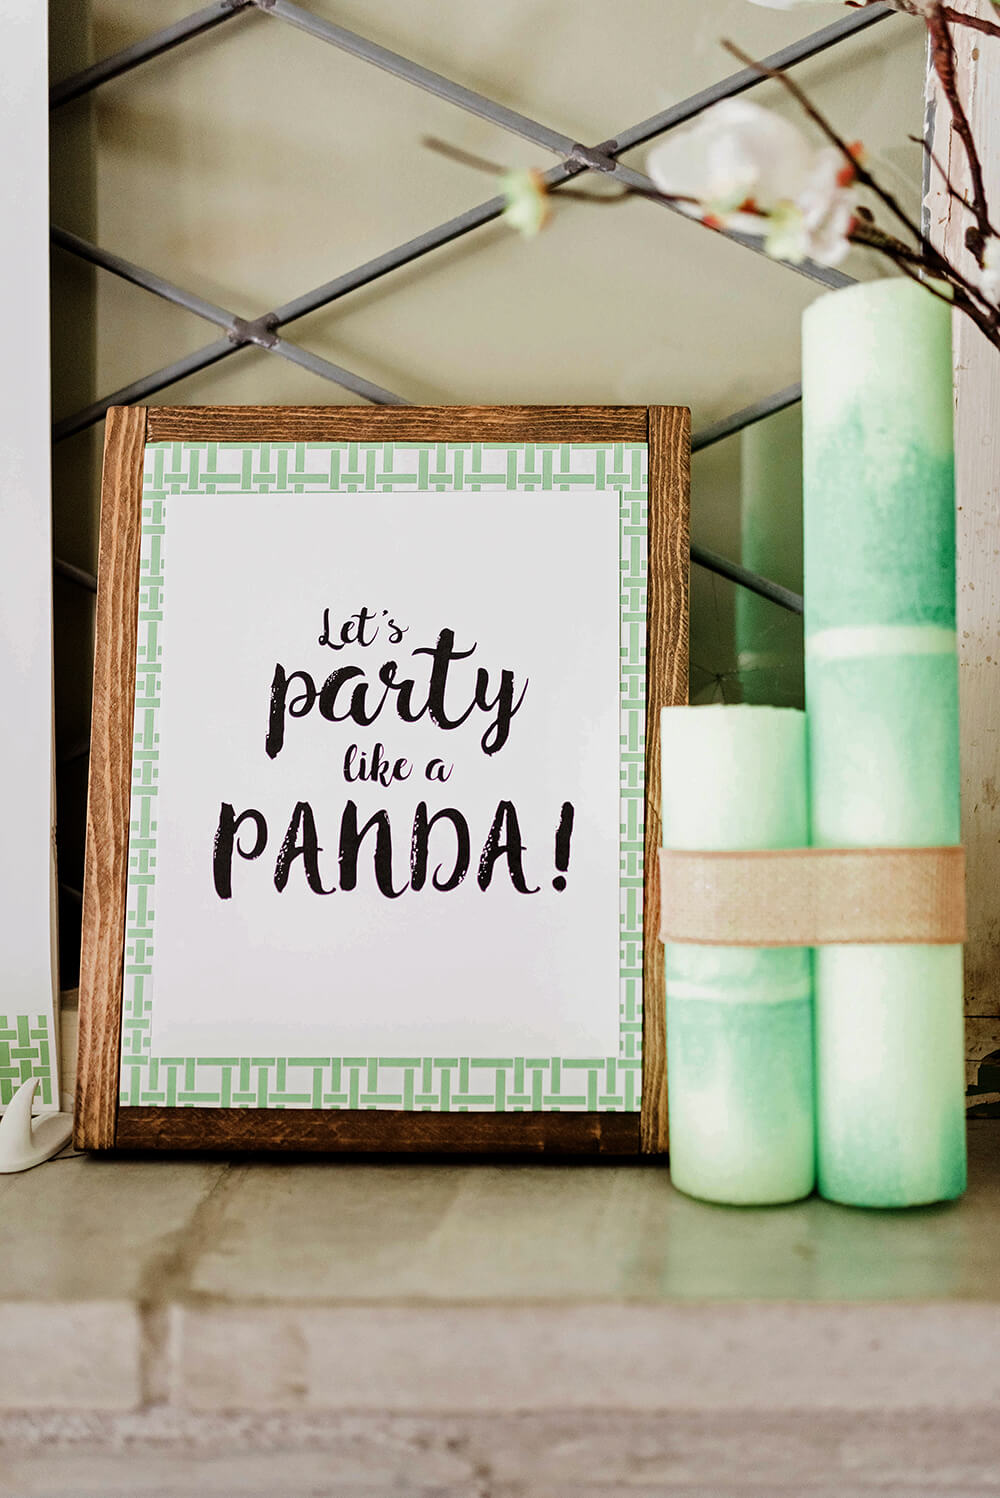 Let's party like a panda graphic on mantel